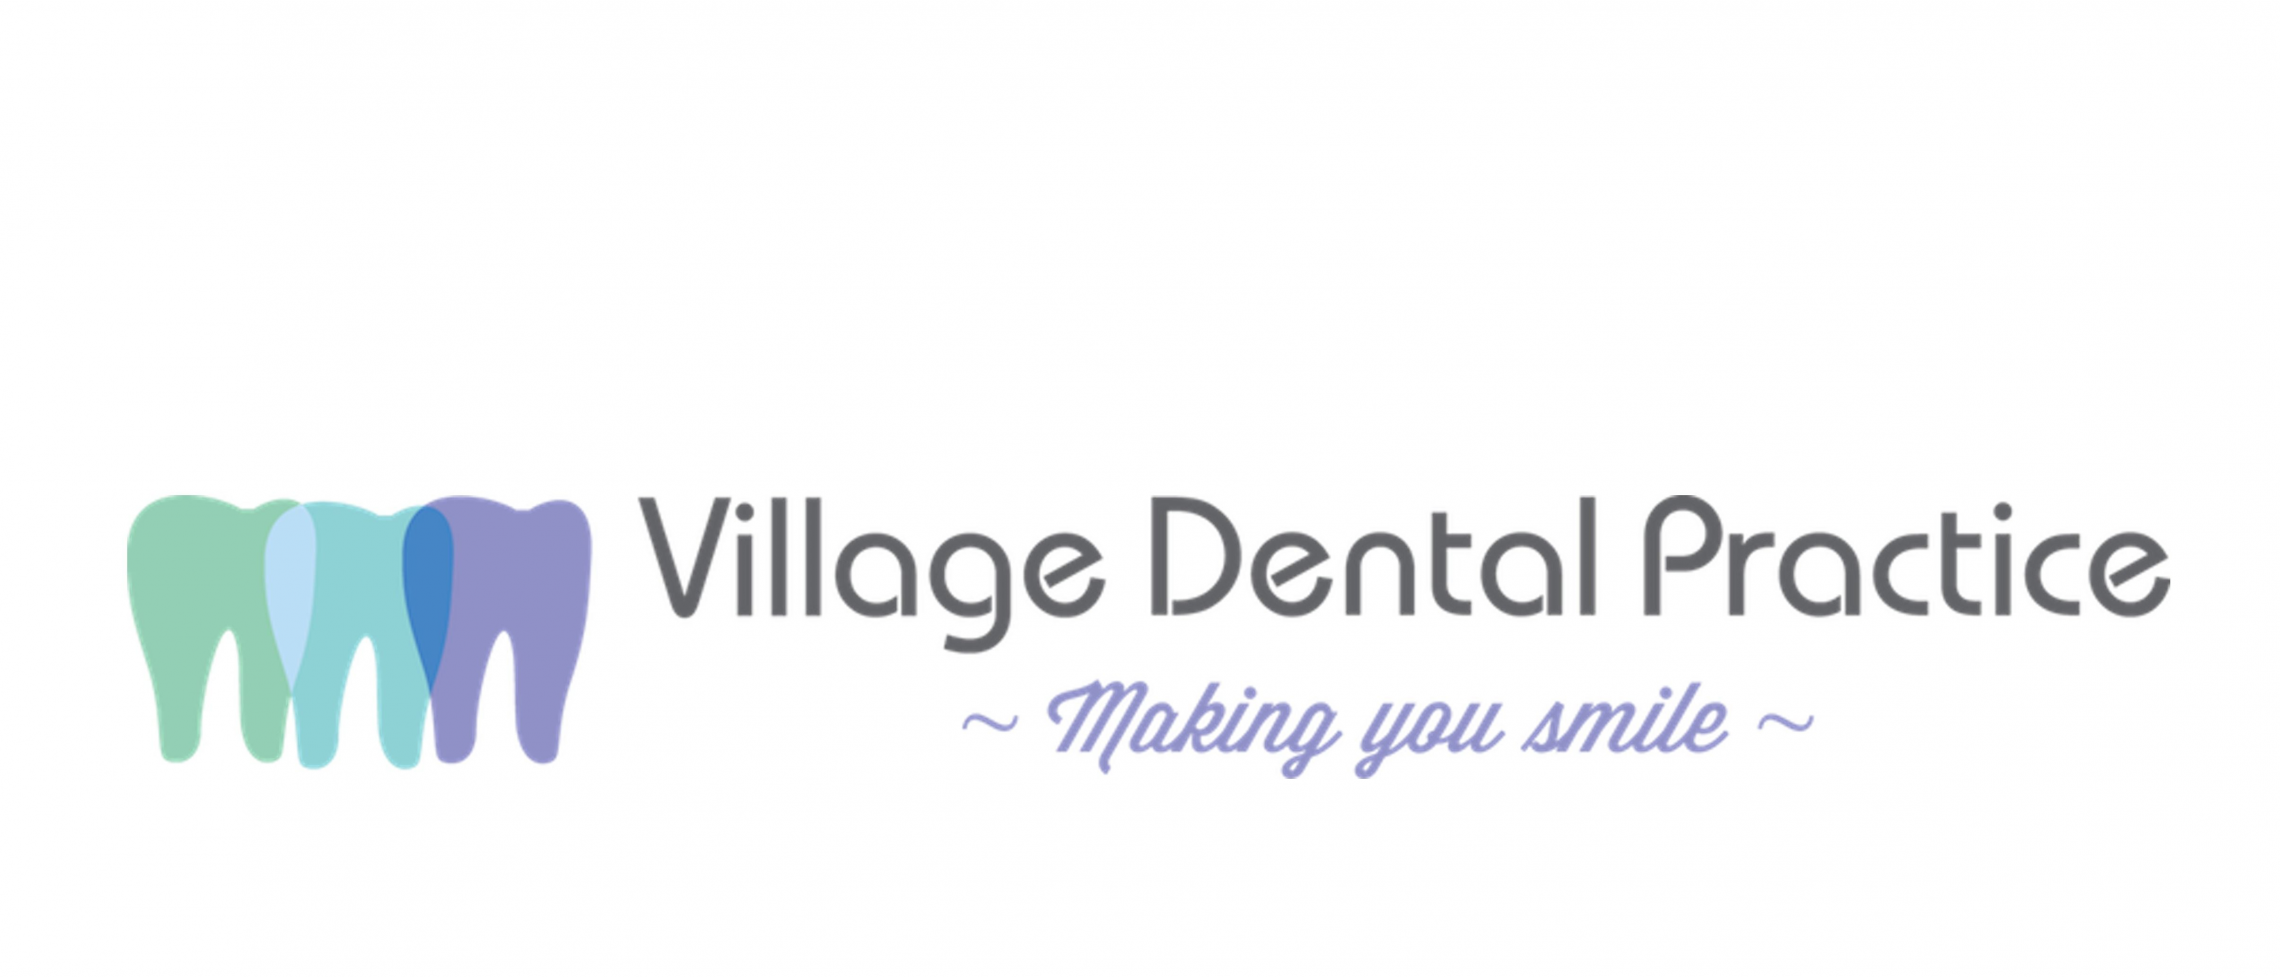 Village Dental Practice - The MiSmile Network